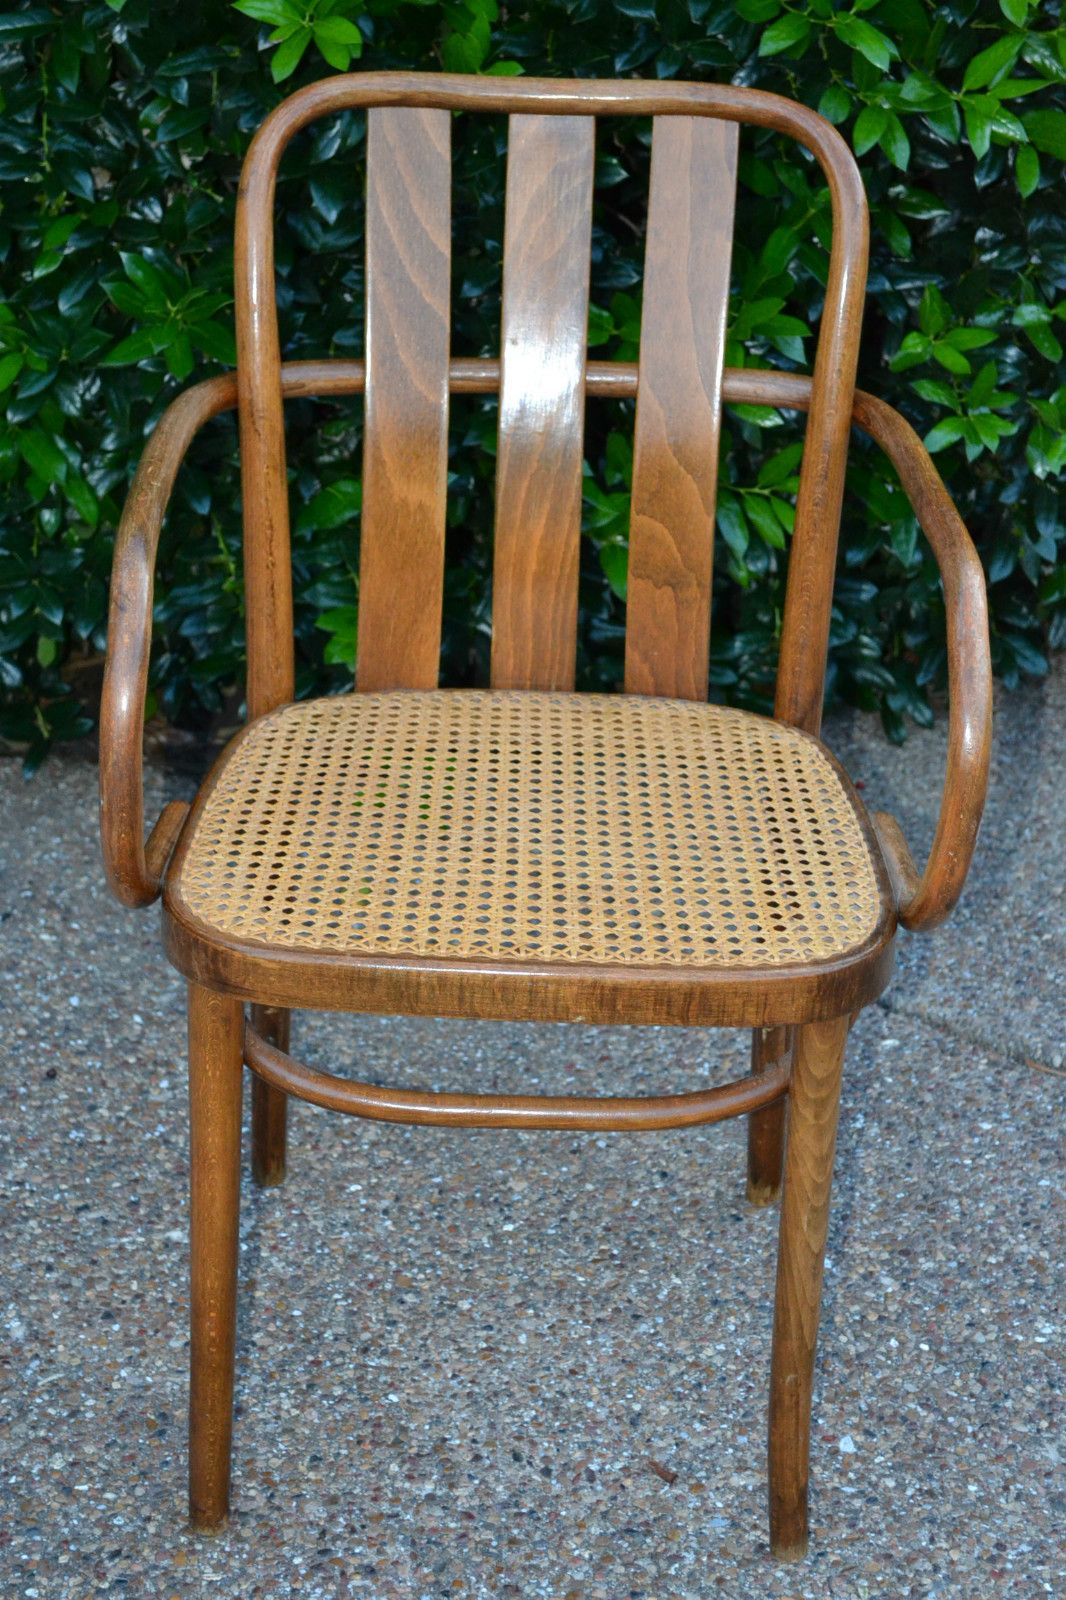 Antique Vintage Thonet Style Bentwood Cane Chair, Original Cane Seat,  Poland | EBay